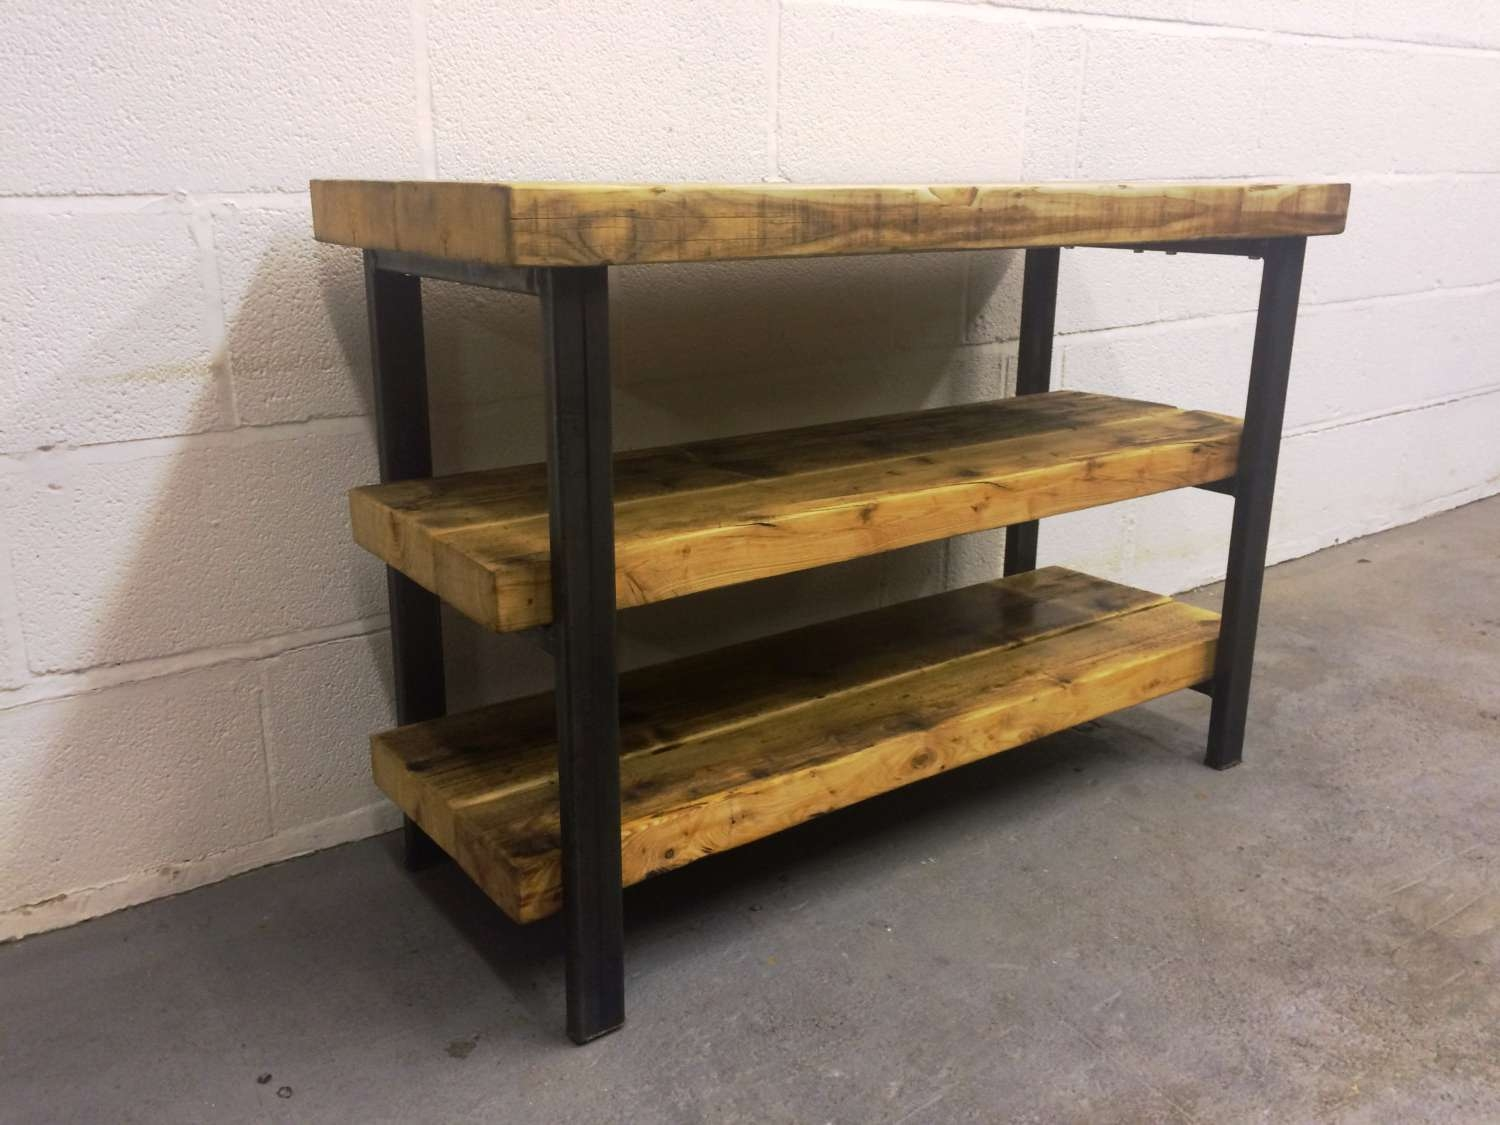 Industrial Chic Reclaimed Tv Stand Media Centre Coffee Table Within Reclaimed Wood And Metal Tv Stands (Gallery 3 of 15)